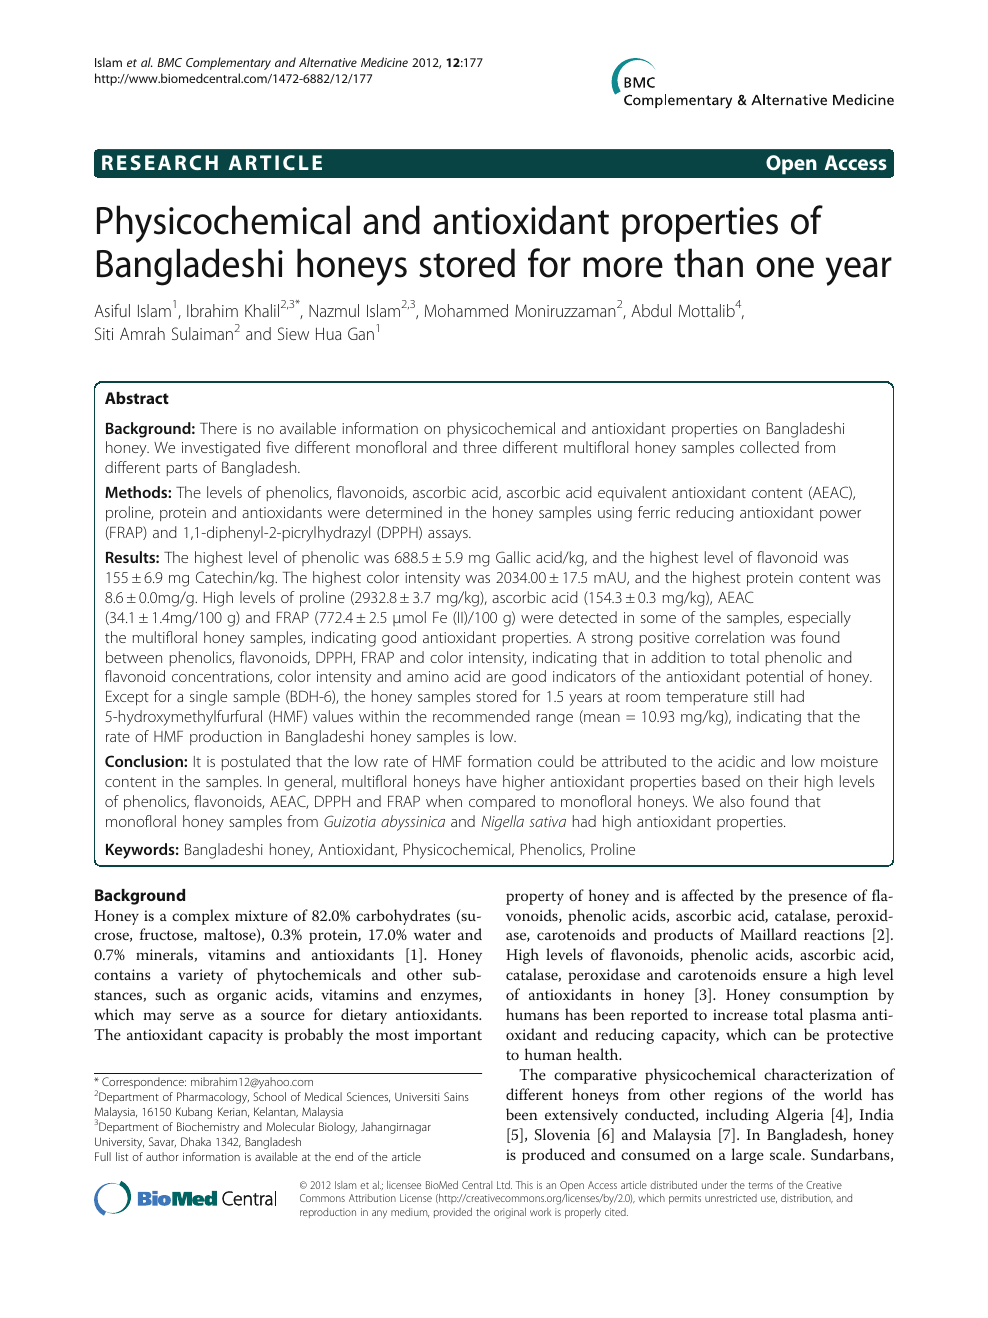 Physicochemical and antioxidant properties of Bangladeshi